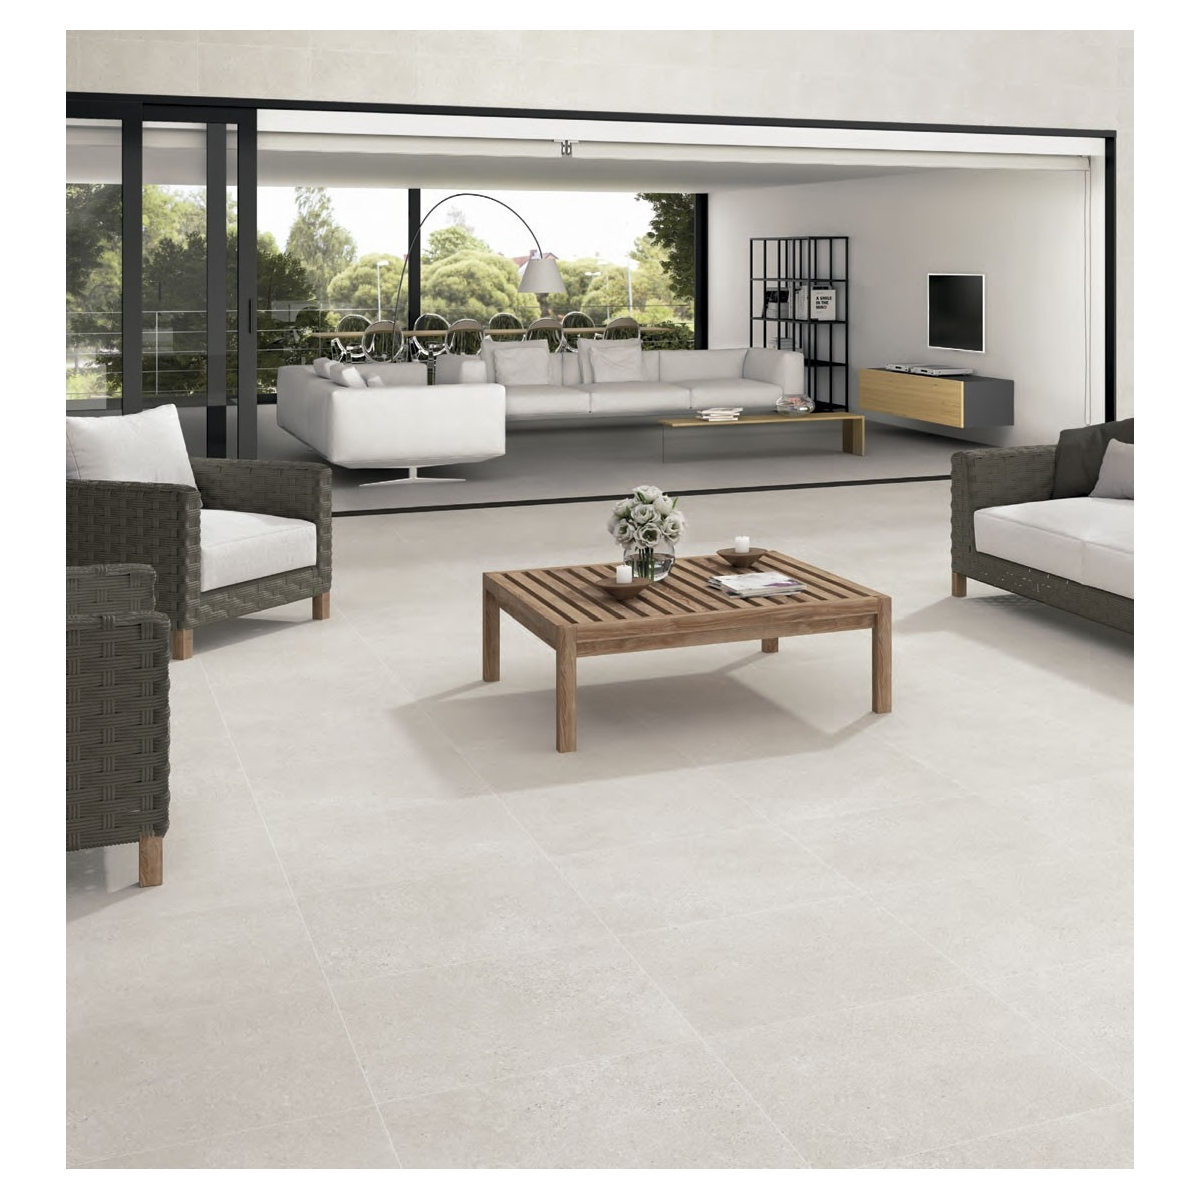 Homestone Sand 60x60 20mm